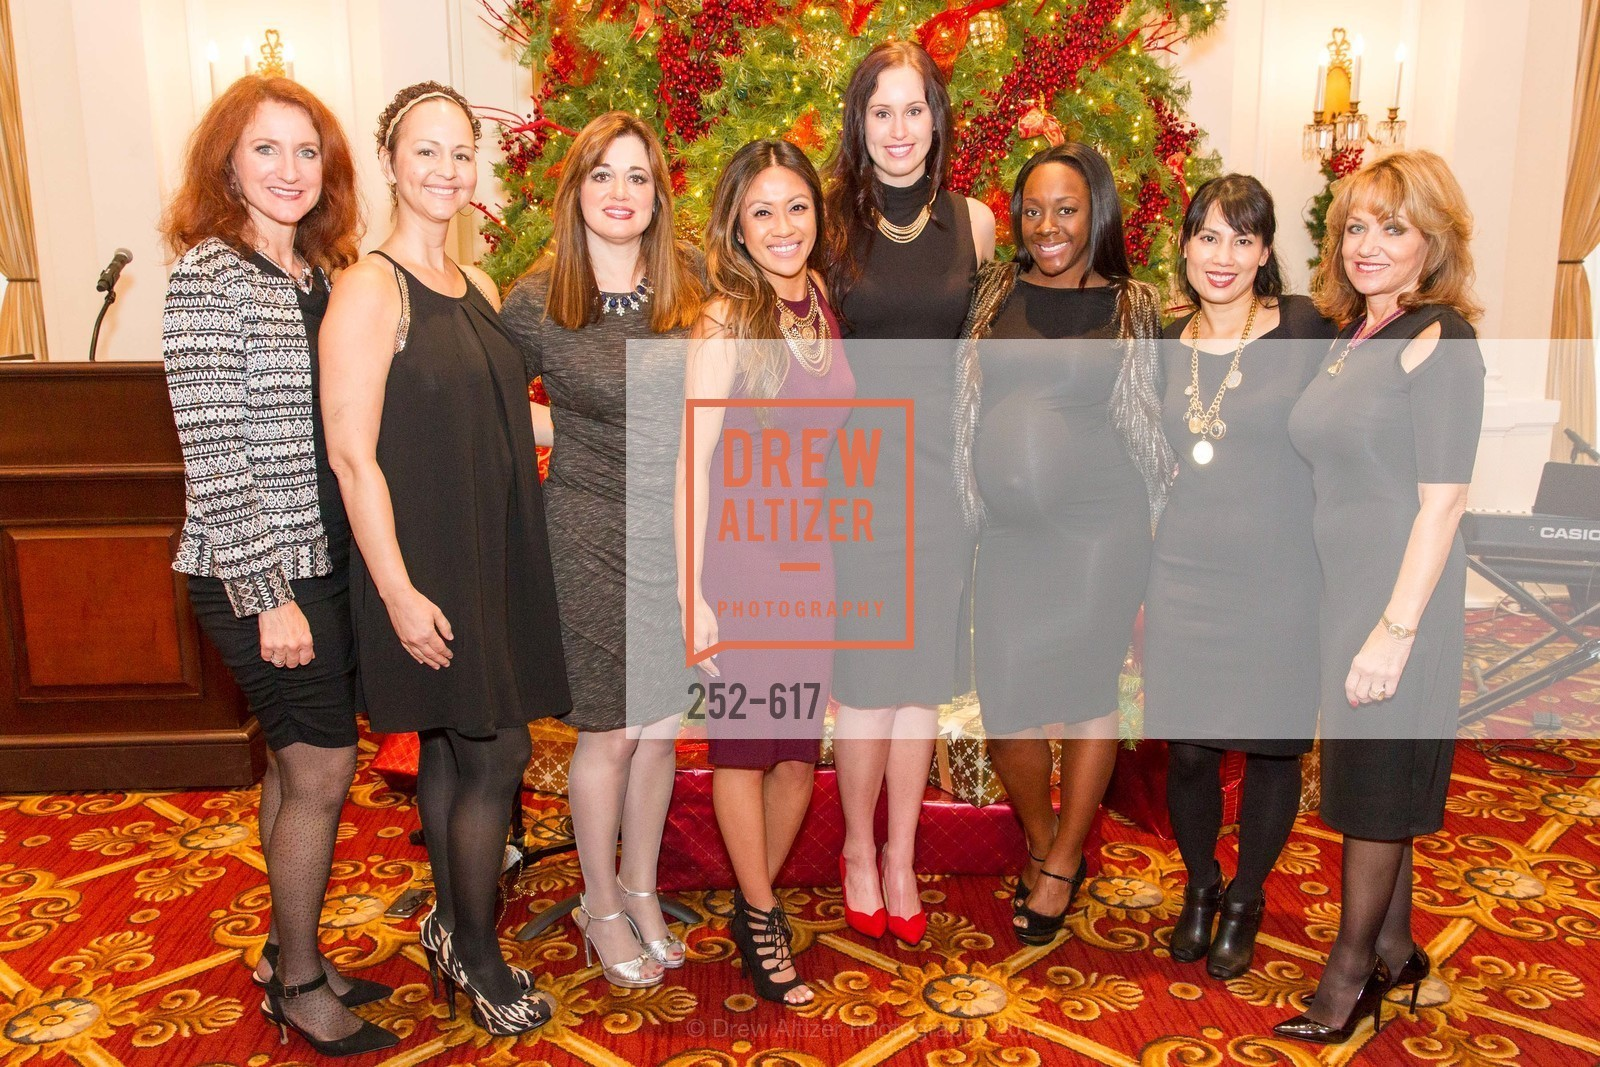 Melissa Galliani, Corynn Wade, Tirzah Lassahn, Janice Cruz, Kelsey Stiles, Nicole Harris, Juliette Nguyen, Joanie Girouard, Boy's & Girls' Towns of Italy Holiday Luncheon, The Olympic Club. 524 Post Street, December 3rd, 2015,Drew Altizer, Drew Altizer Photography, full-service agency, private events, San Francisco photographer, photographer california